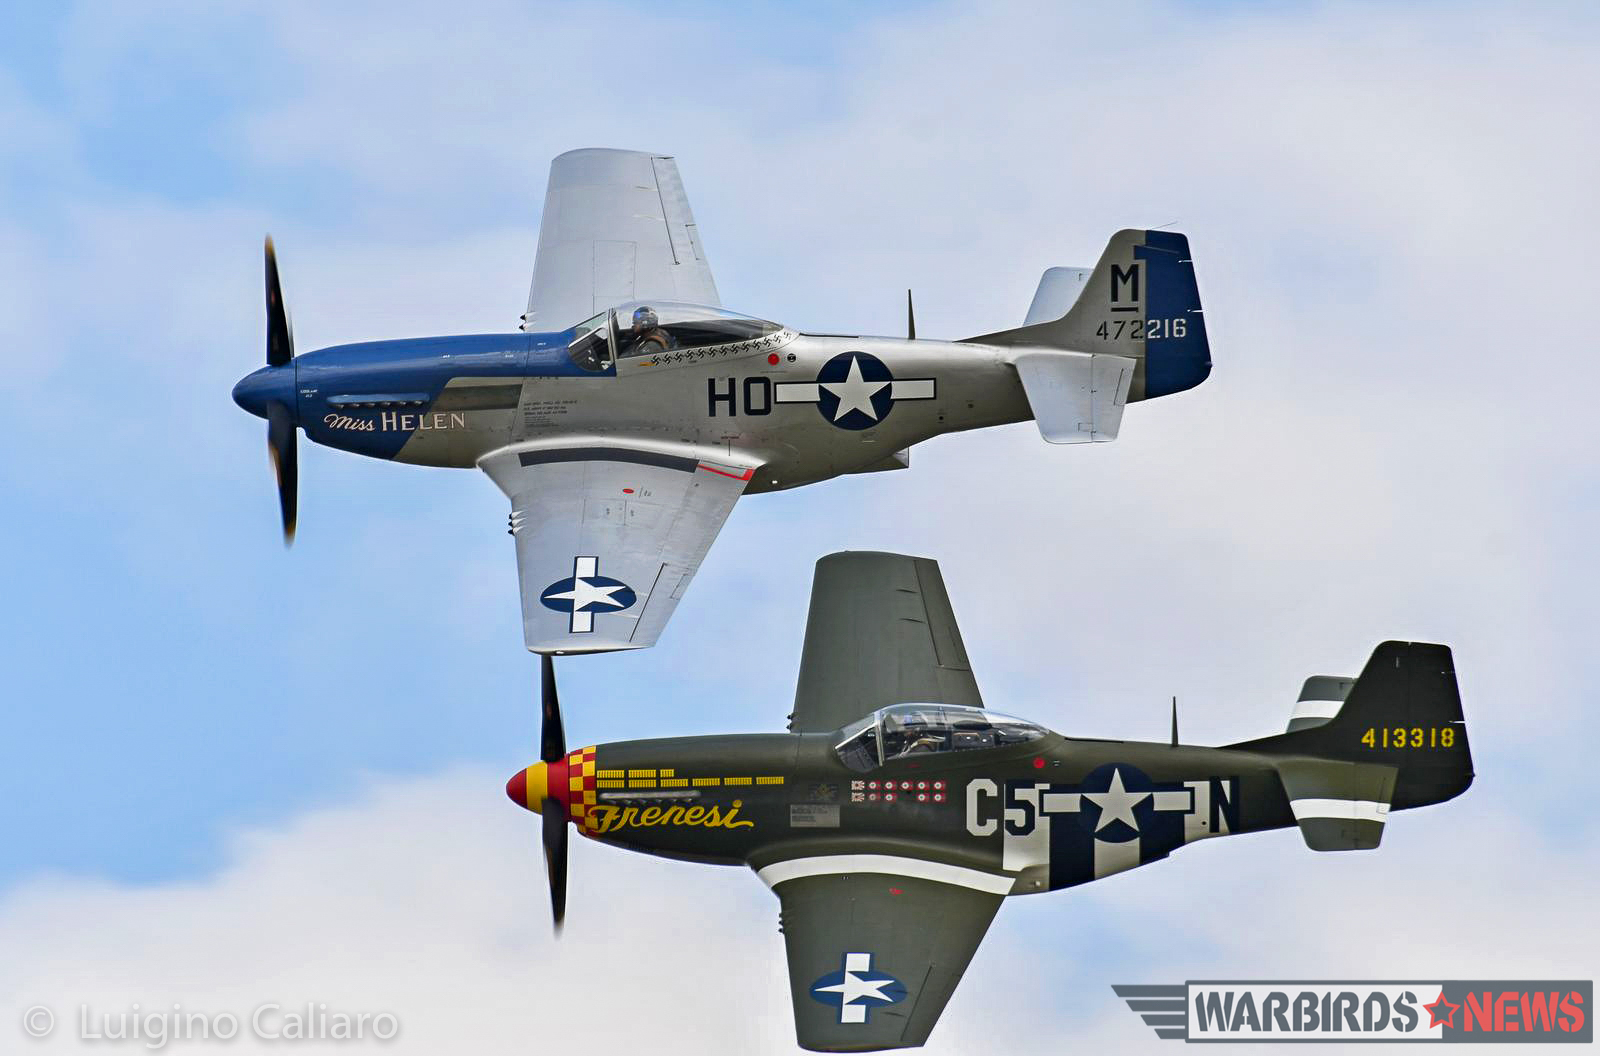 A magnificent closeup showing two of the many Mustangs at the show in tight formation. (photo by Luigino Caliaro)